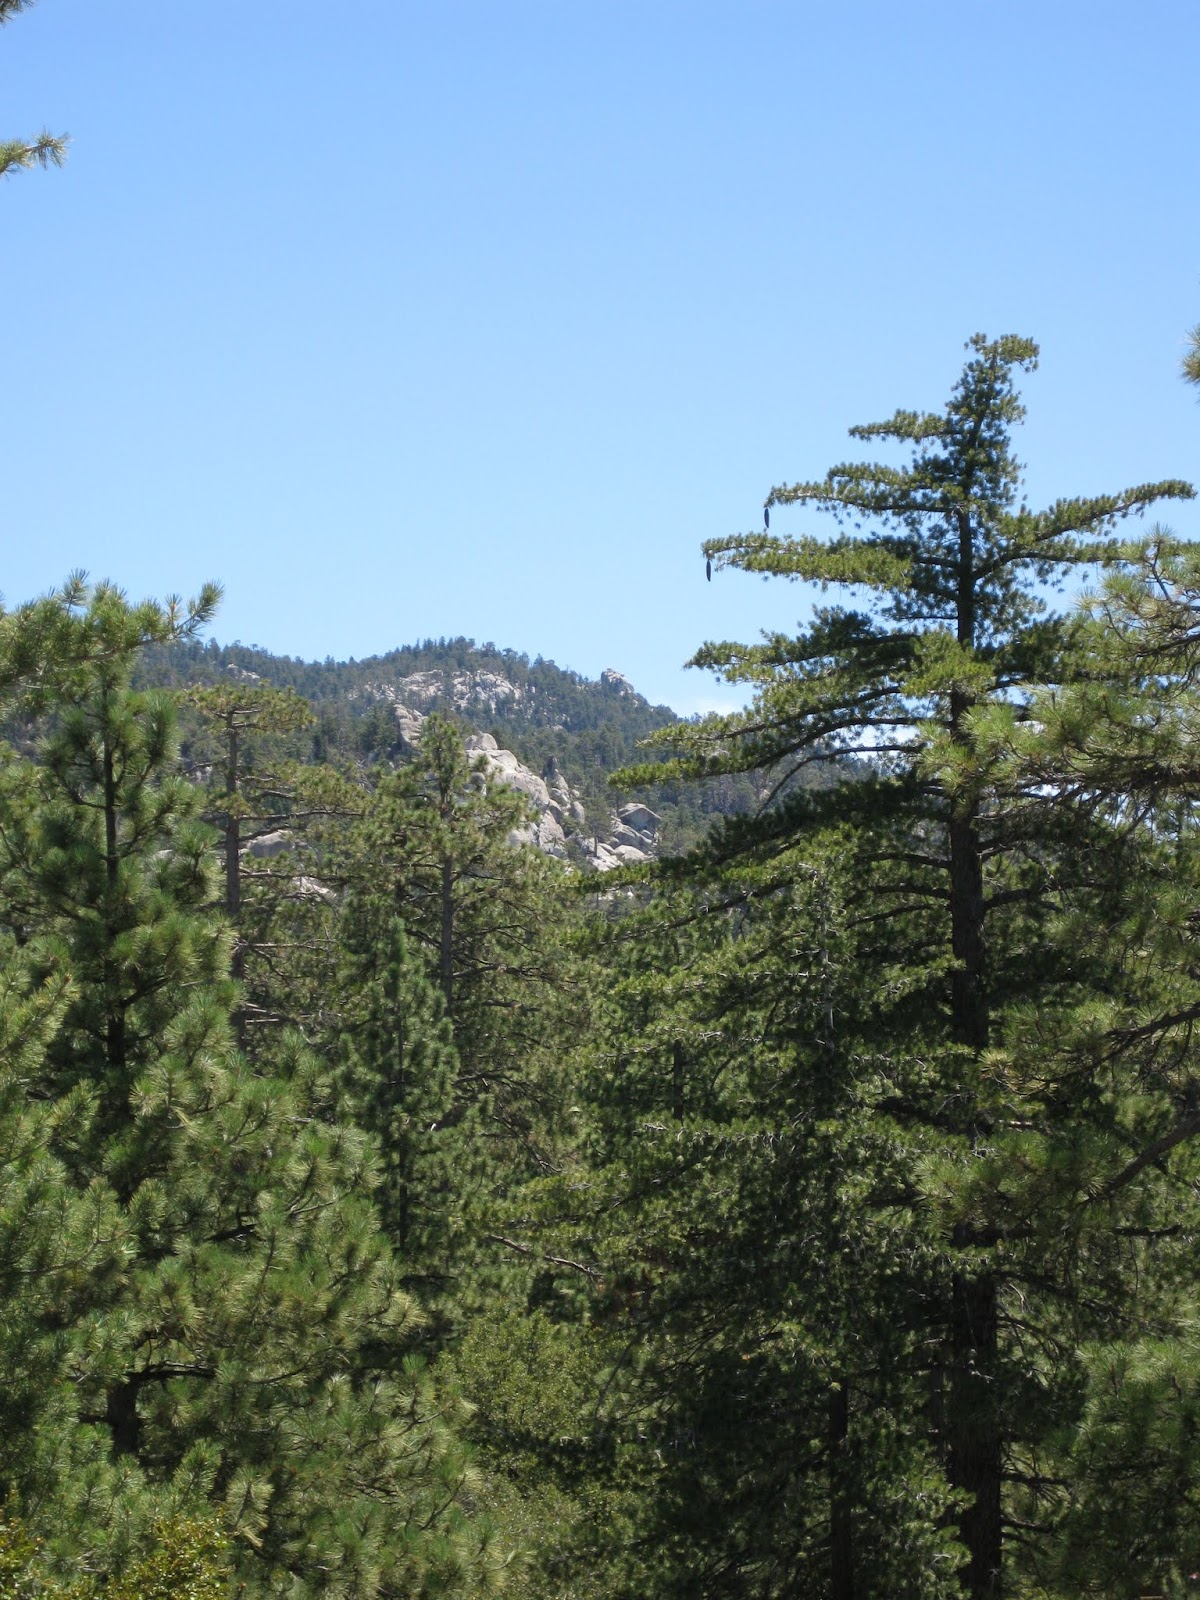 Nestled at an elevation of more than 7, feet, Thousand Trails Idyllwild RV camping grounds is one of the few destinations in Southern California with all four seasons. With close to sites spread over acres, the Idyllwild RV campground in California is a full-service preserve with something for everyone, from basic tent camping to sites for your luxury RV.